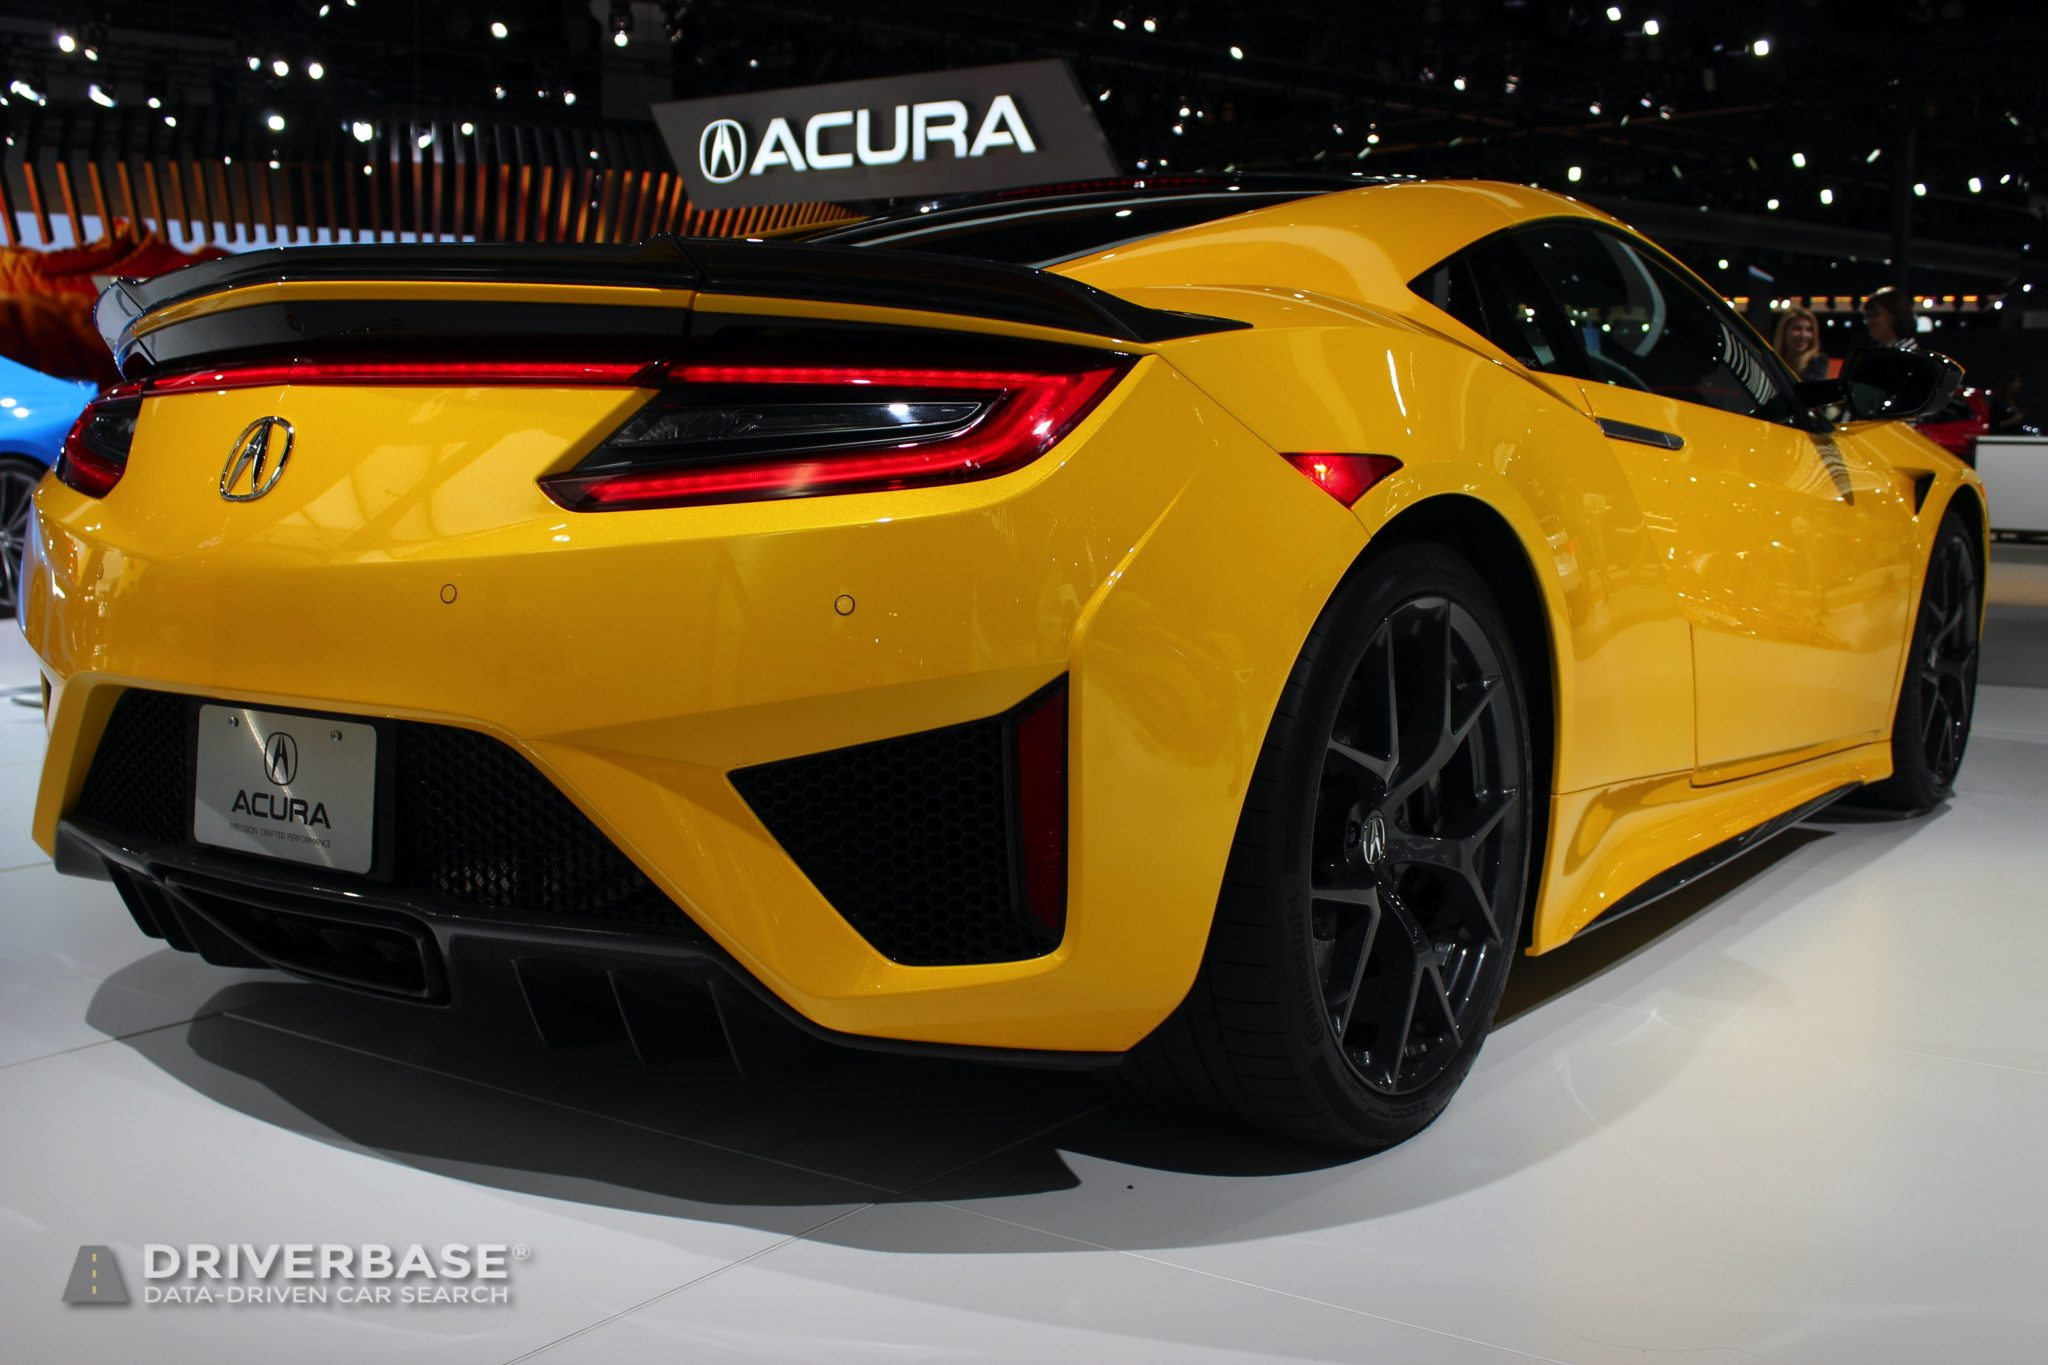 2020 Acura NSX at the 2019 Los Angeles Auto Show